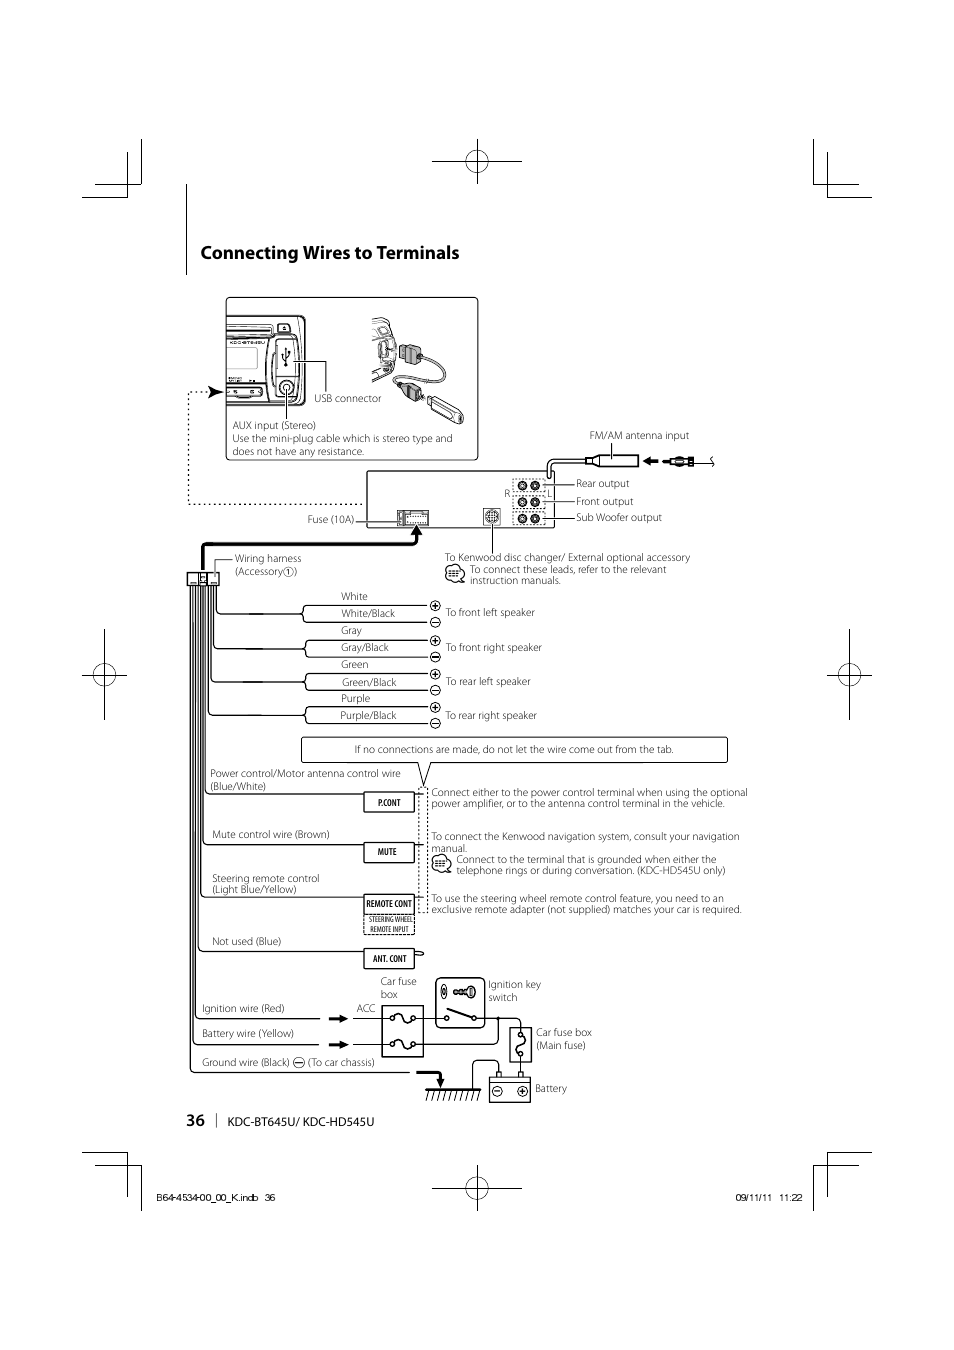 Kenwood Kdc Hd545u Wiring Diagram Blog Model 152 Connecting Wires To Terminals User Manual